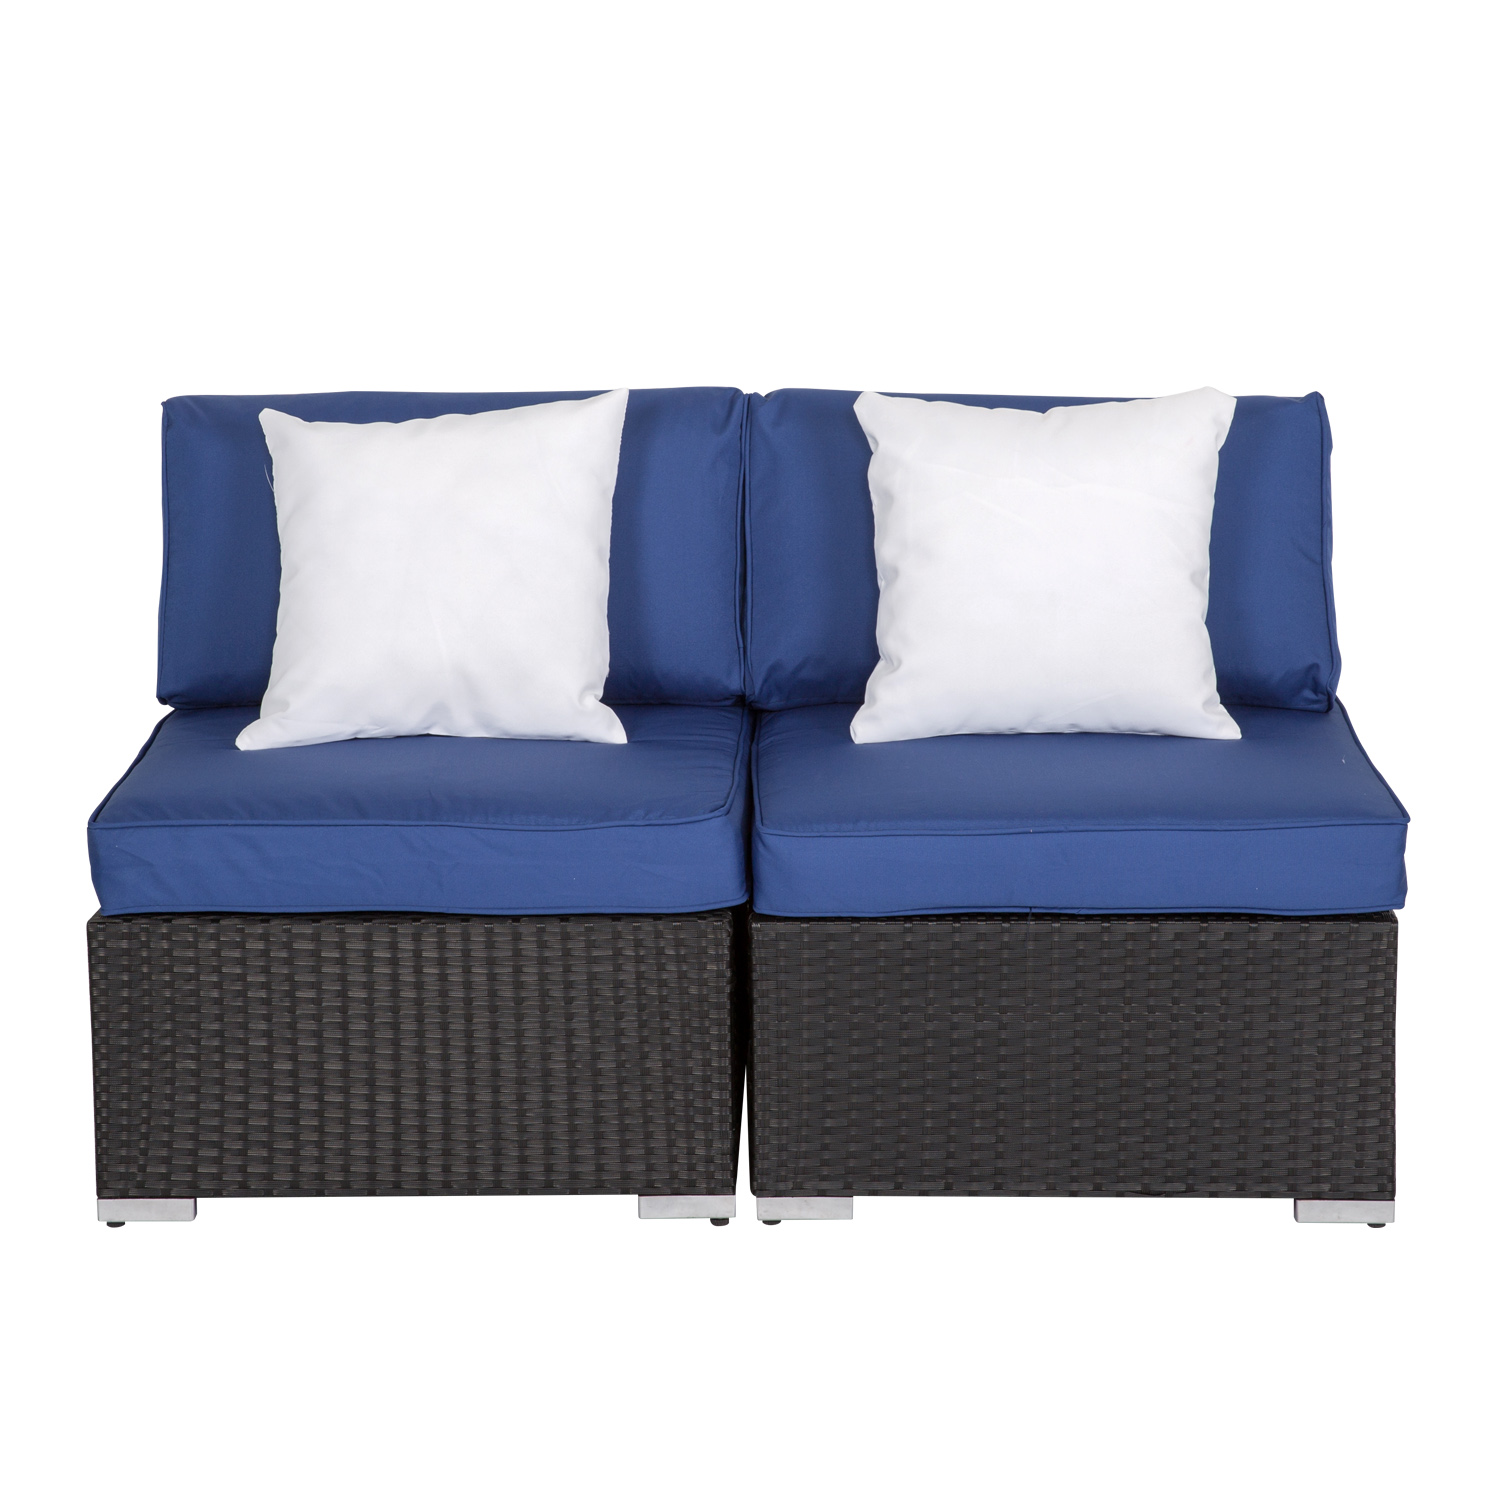 Surprising Details About Wicker Patio Sofa Loveseat 2Pc Armless Chair Outdoor Furniture Set Blue Cushion Inzonedesignstudio Interior Chair Design Inzonedesignstudiocom